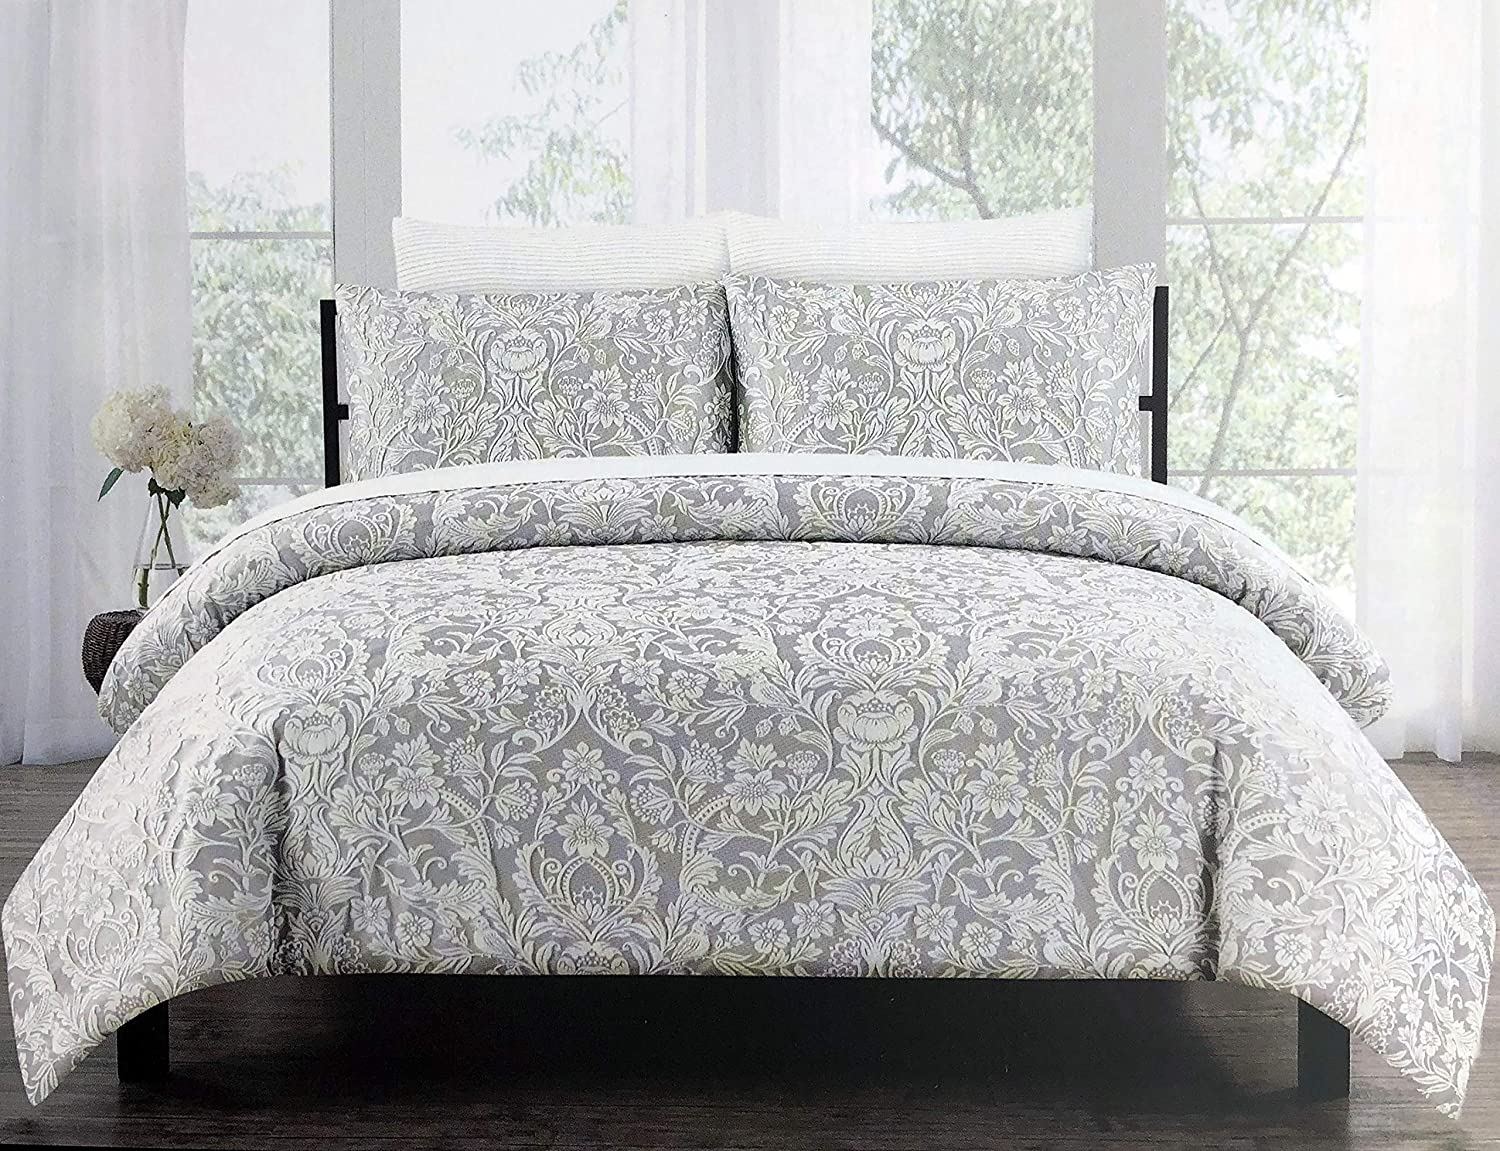 Tahari Home Maison Bedding 3 Piece Full/Queen Luxury Duvet Cover Shams Set Raised Embroidered Floral Damask Pattern Birds in Cream/Off-White Thread on Light Gray- Charleston